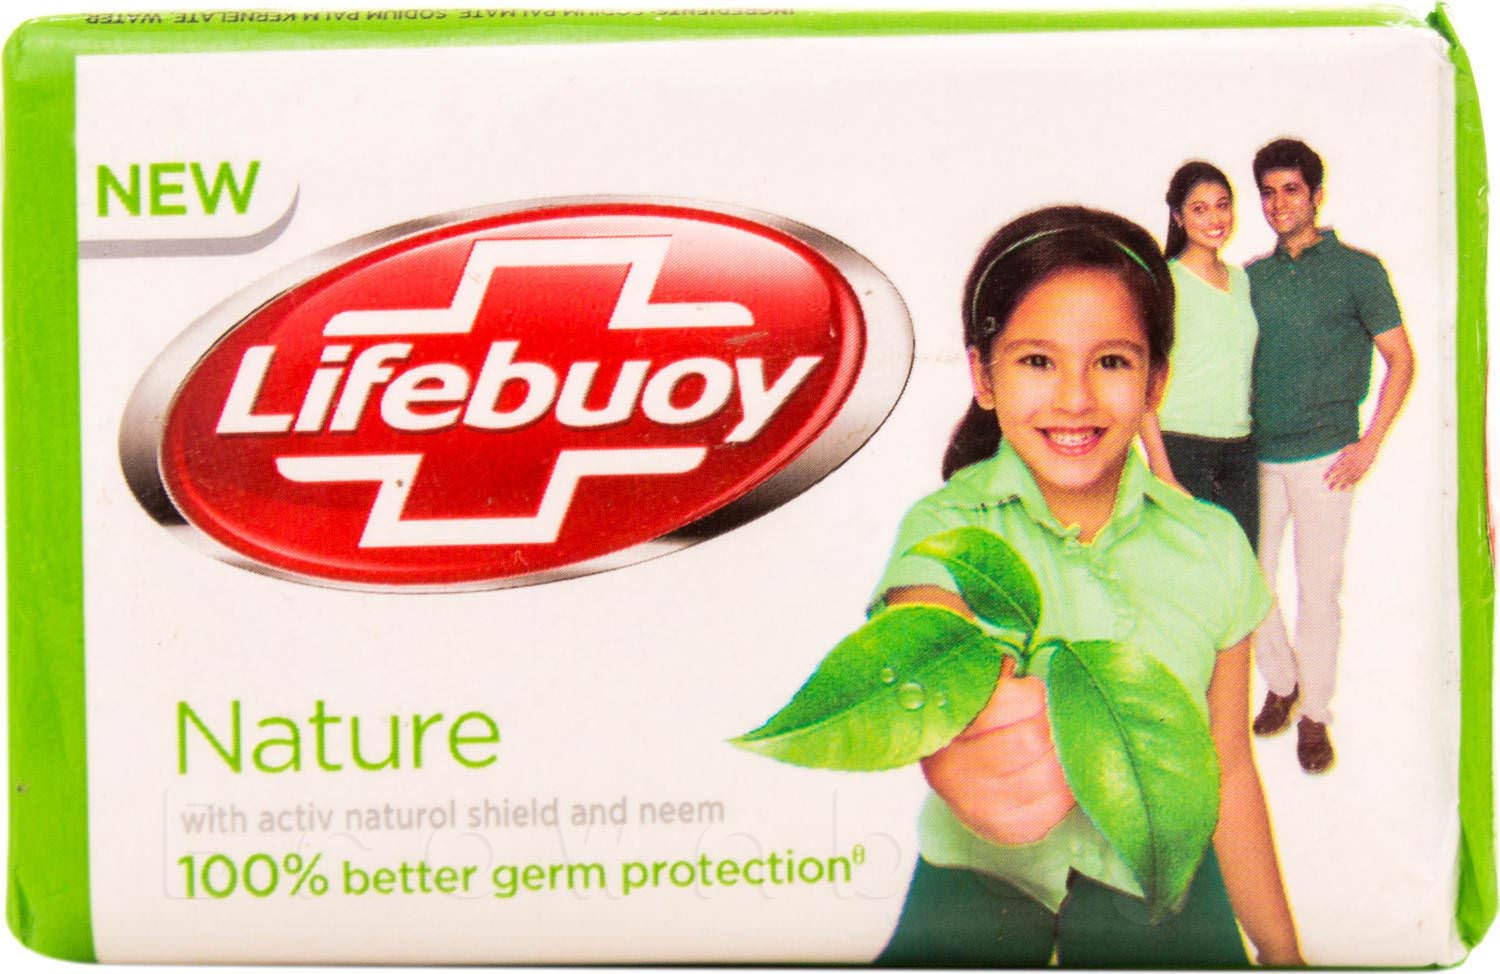 Lifebuoy Nature Soap with Activ Naturol Shield and Neem